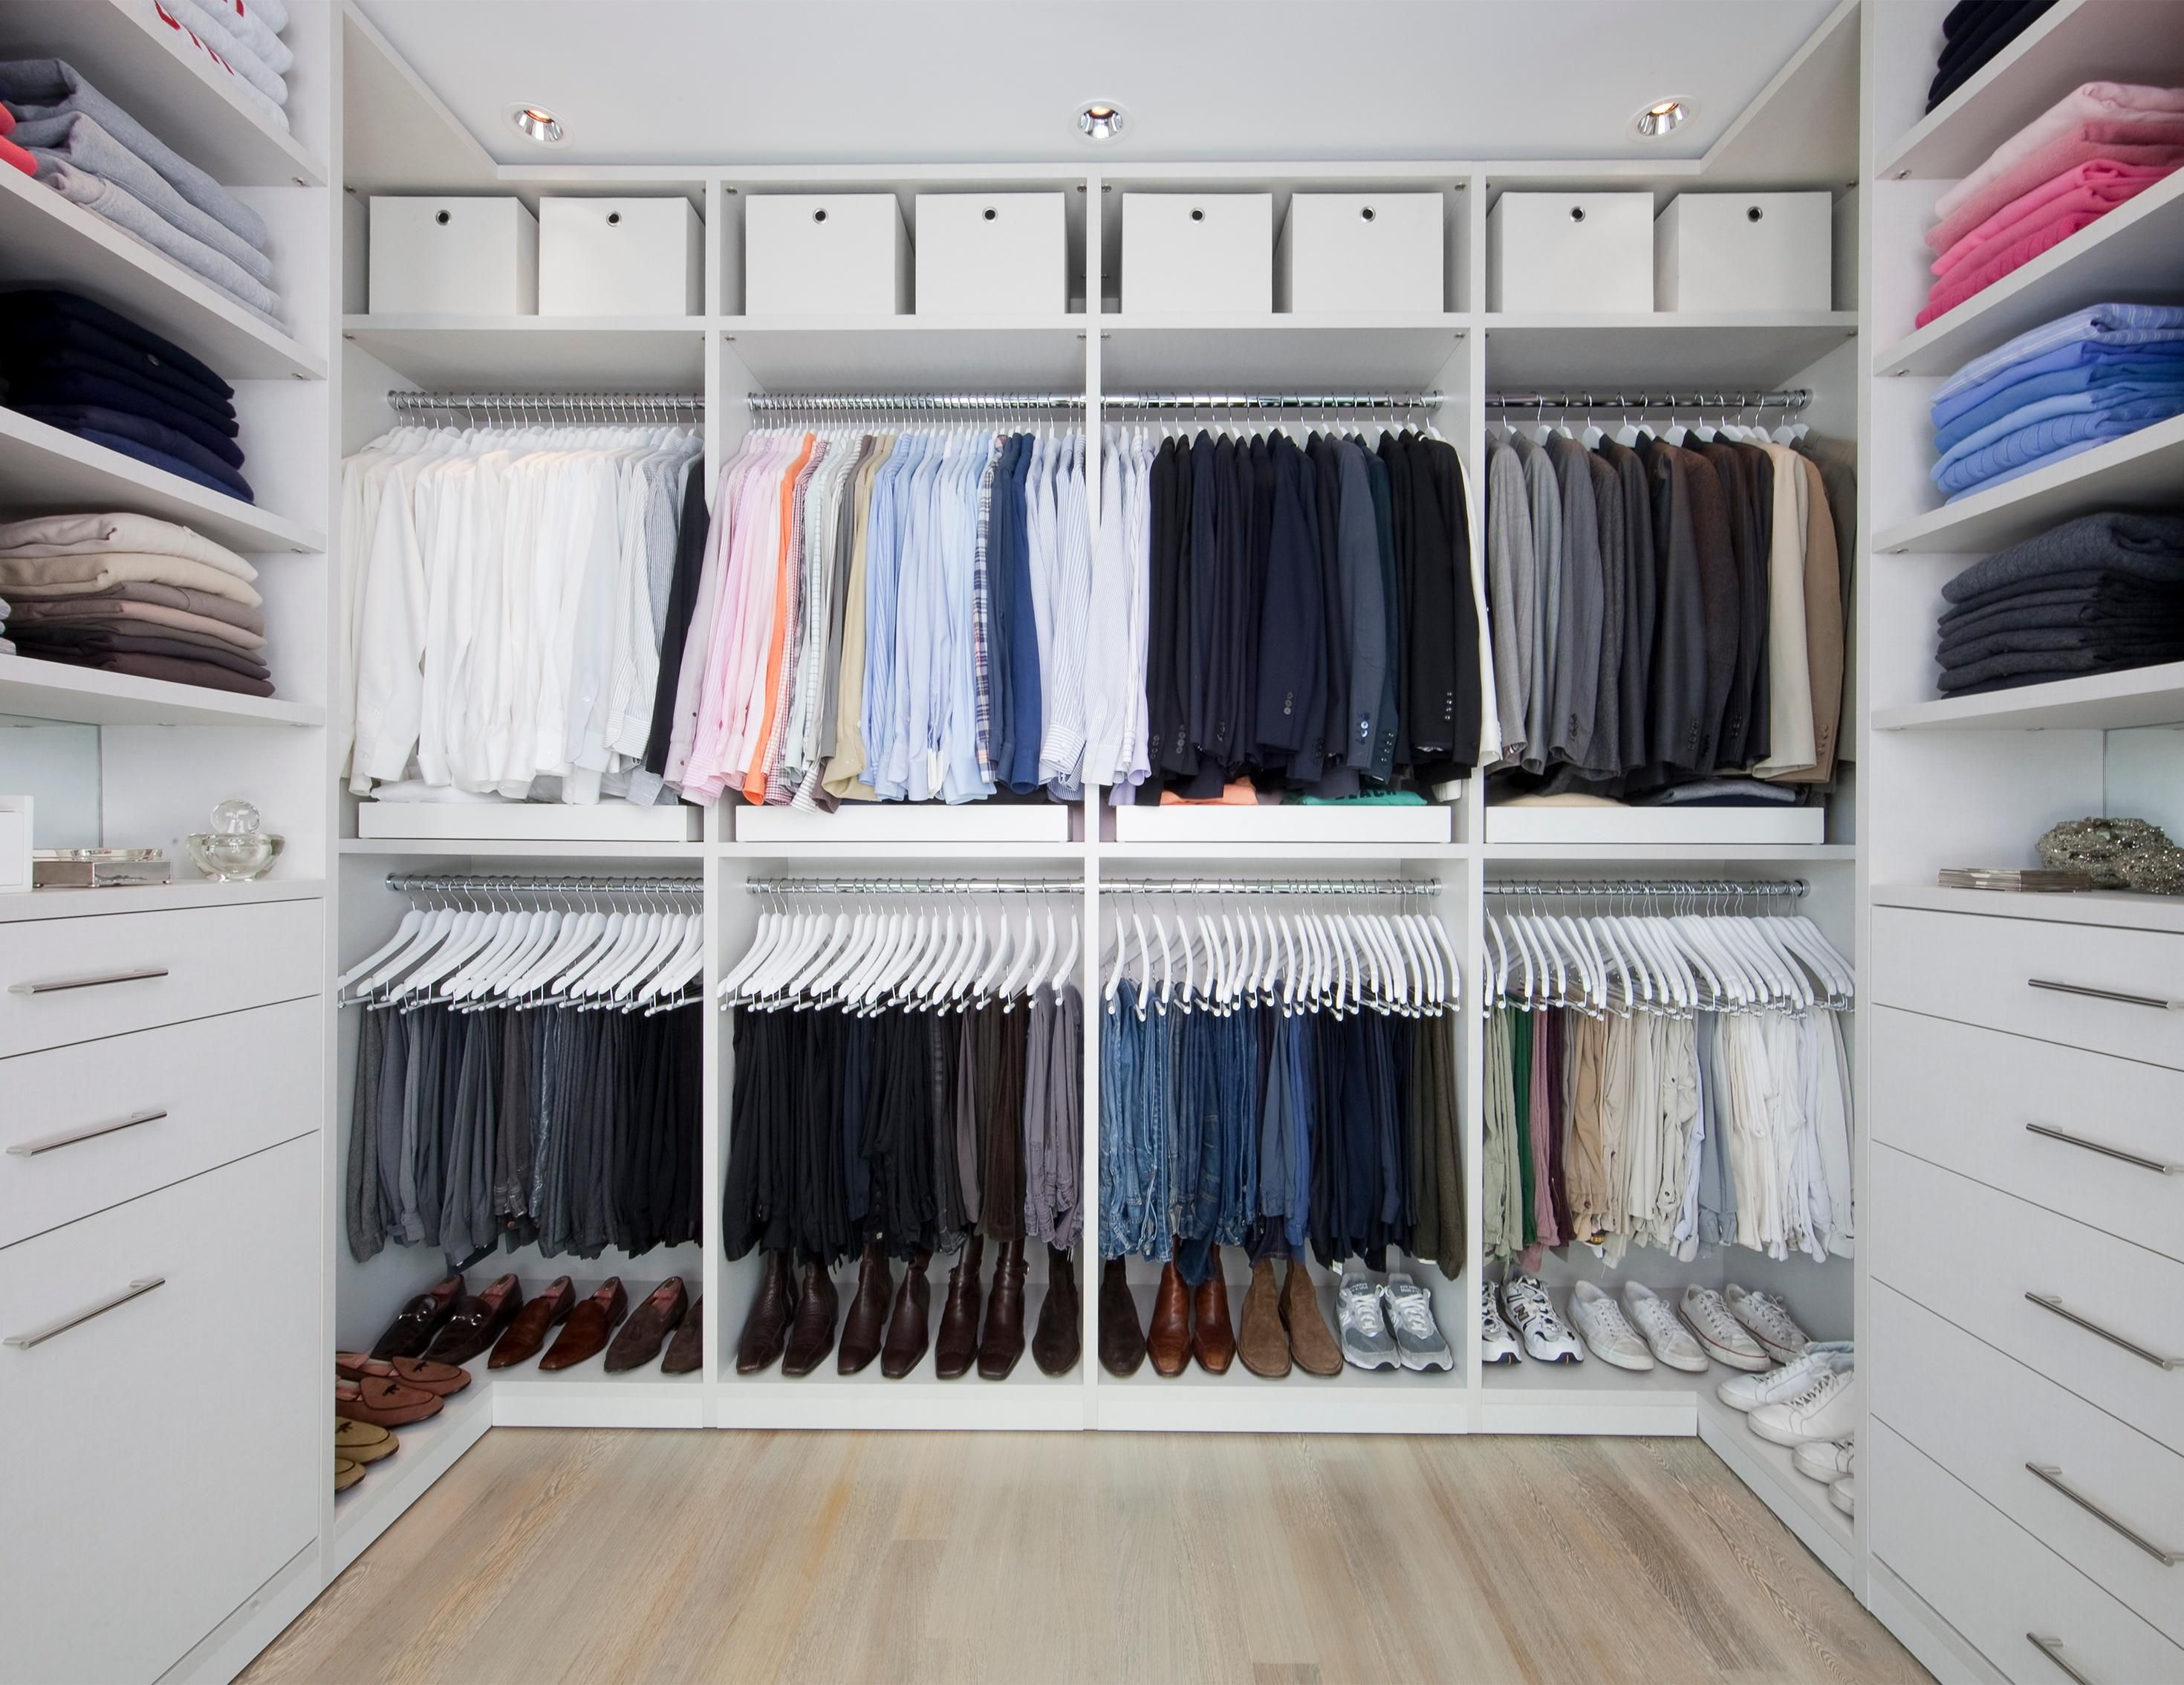 bedroom tidysquares and in closet popular demure system master trend ideas image for inspiring inc design walk a appealing files trends